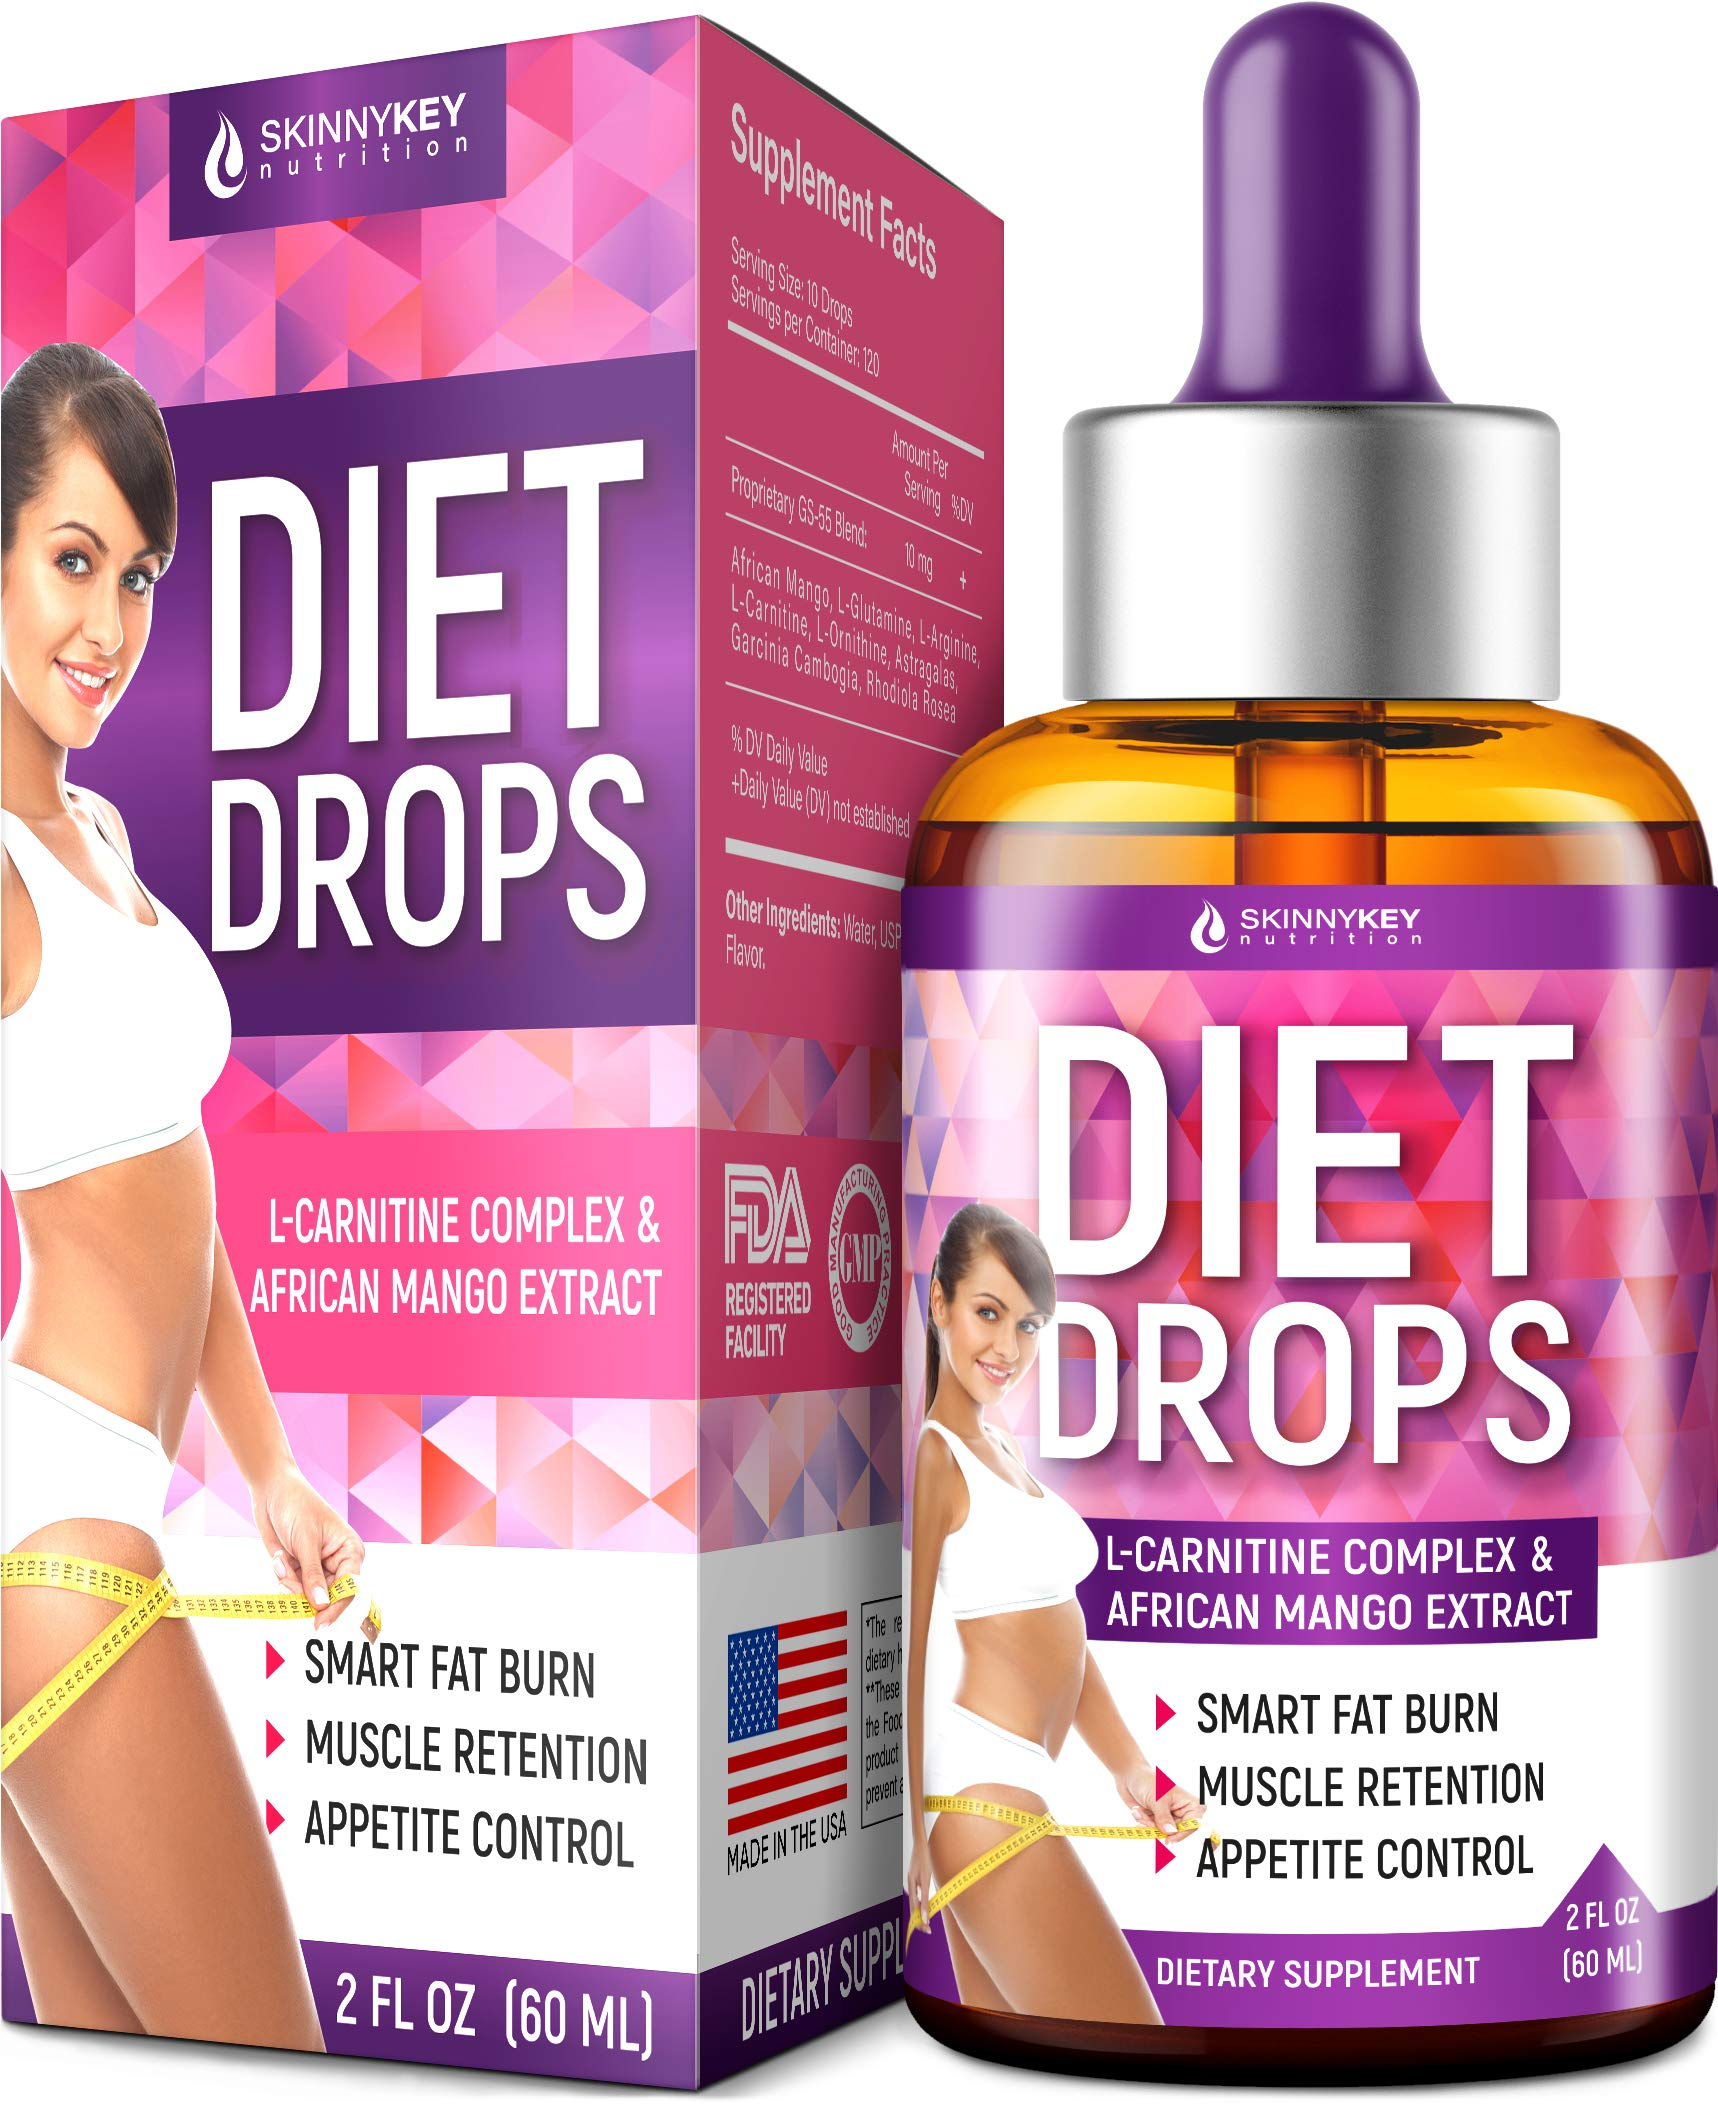 Diet Drops with L-Carnitine - Most Effective Fat Burner - Natural Appetite Suppressant & Metabolism Booster - Made in USA - Weight Loss Drops with L-Arginine, L-Glutamine & Garcinia Cambogia by SkinnyKey Nutrition